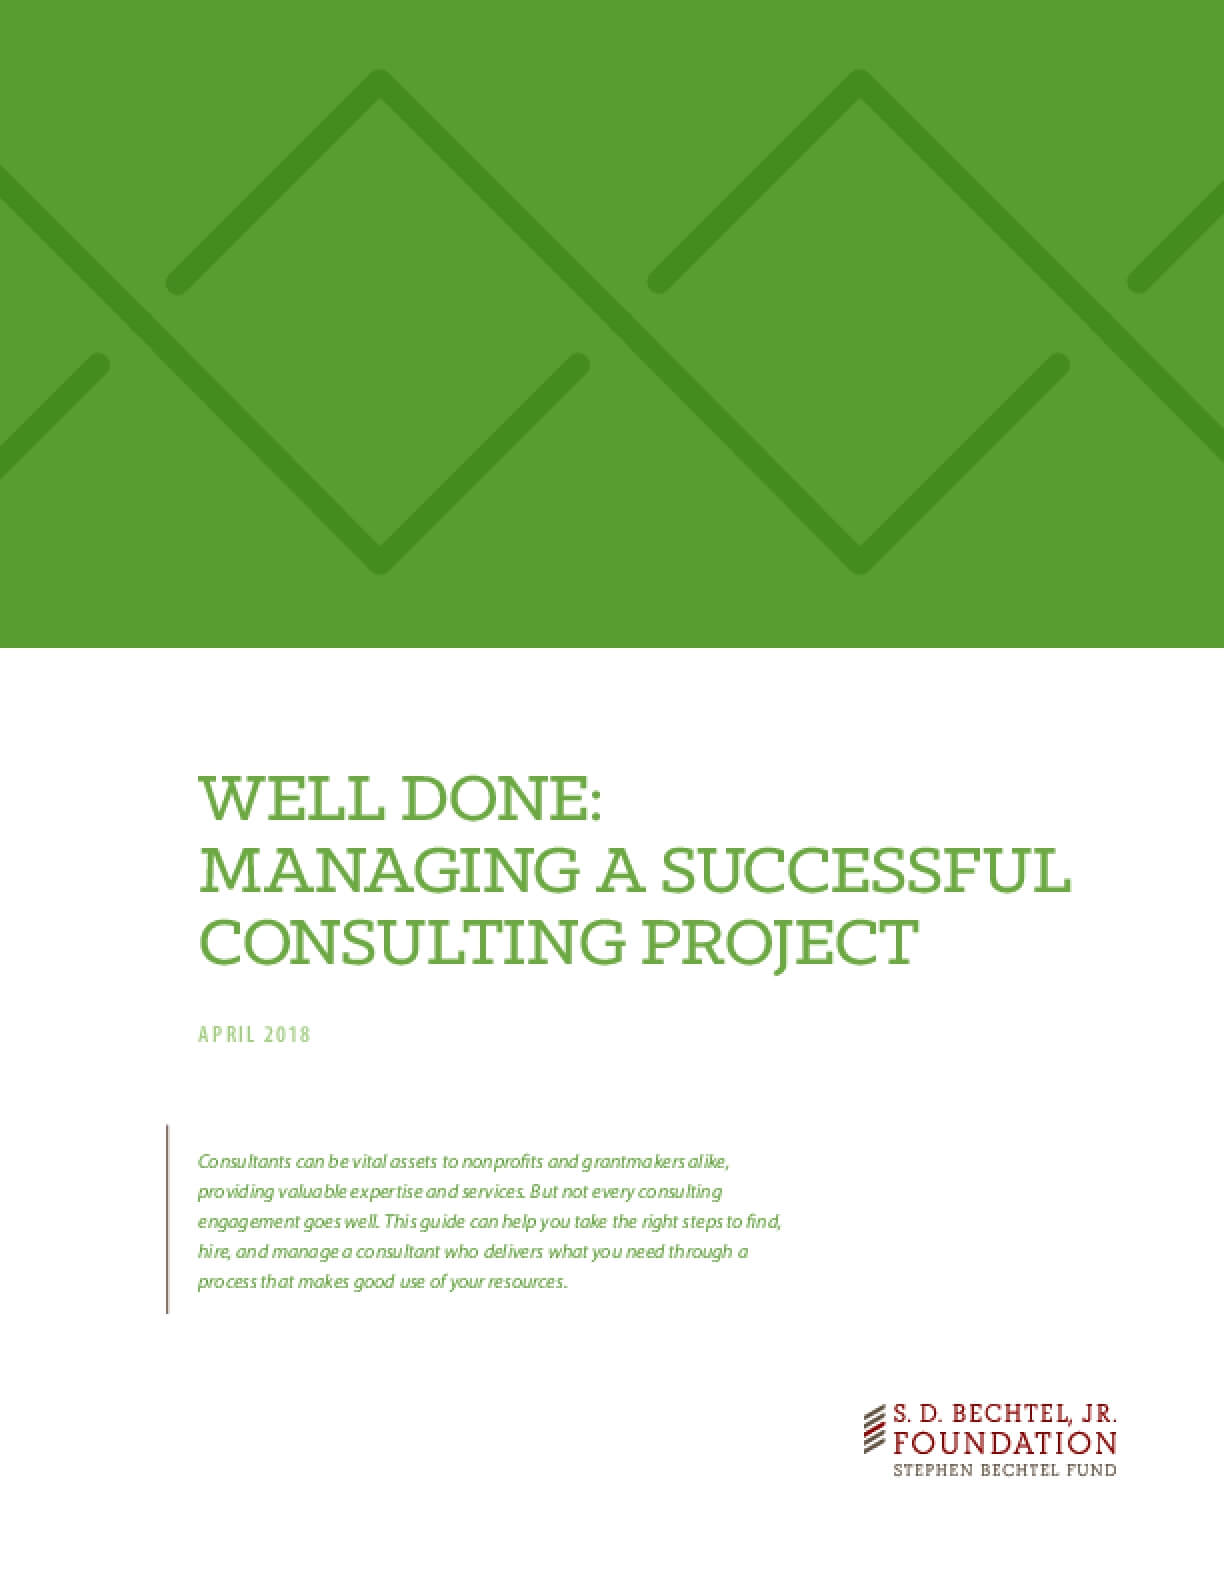 Well Done: Managing a Successful Consulting Project